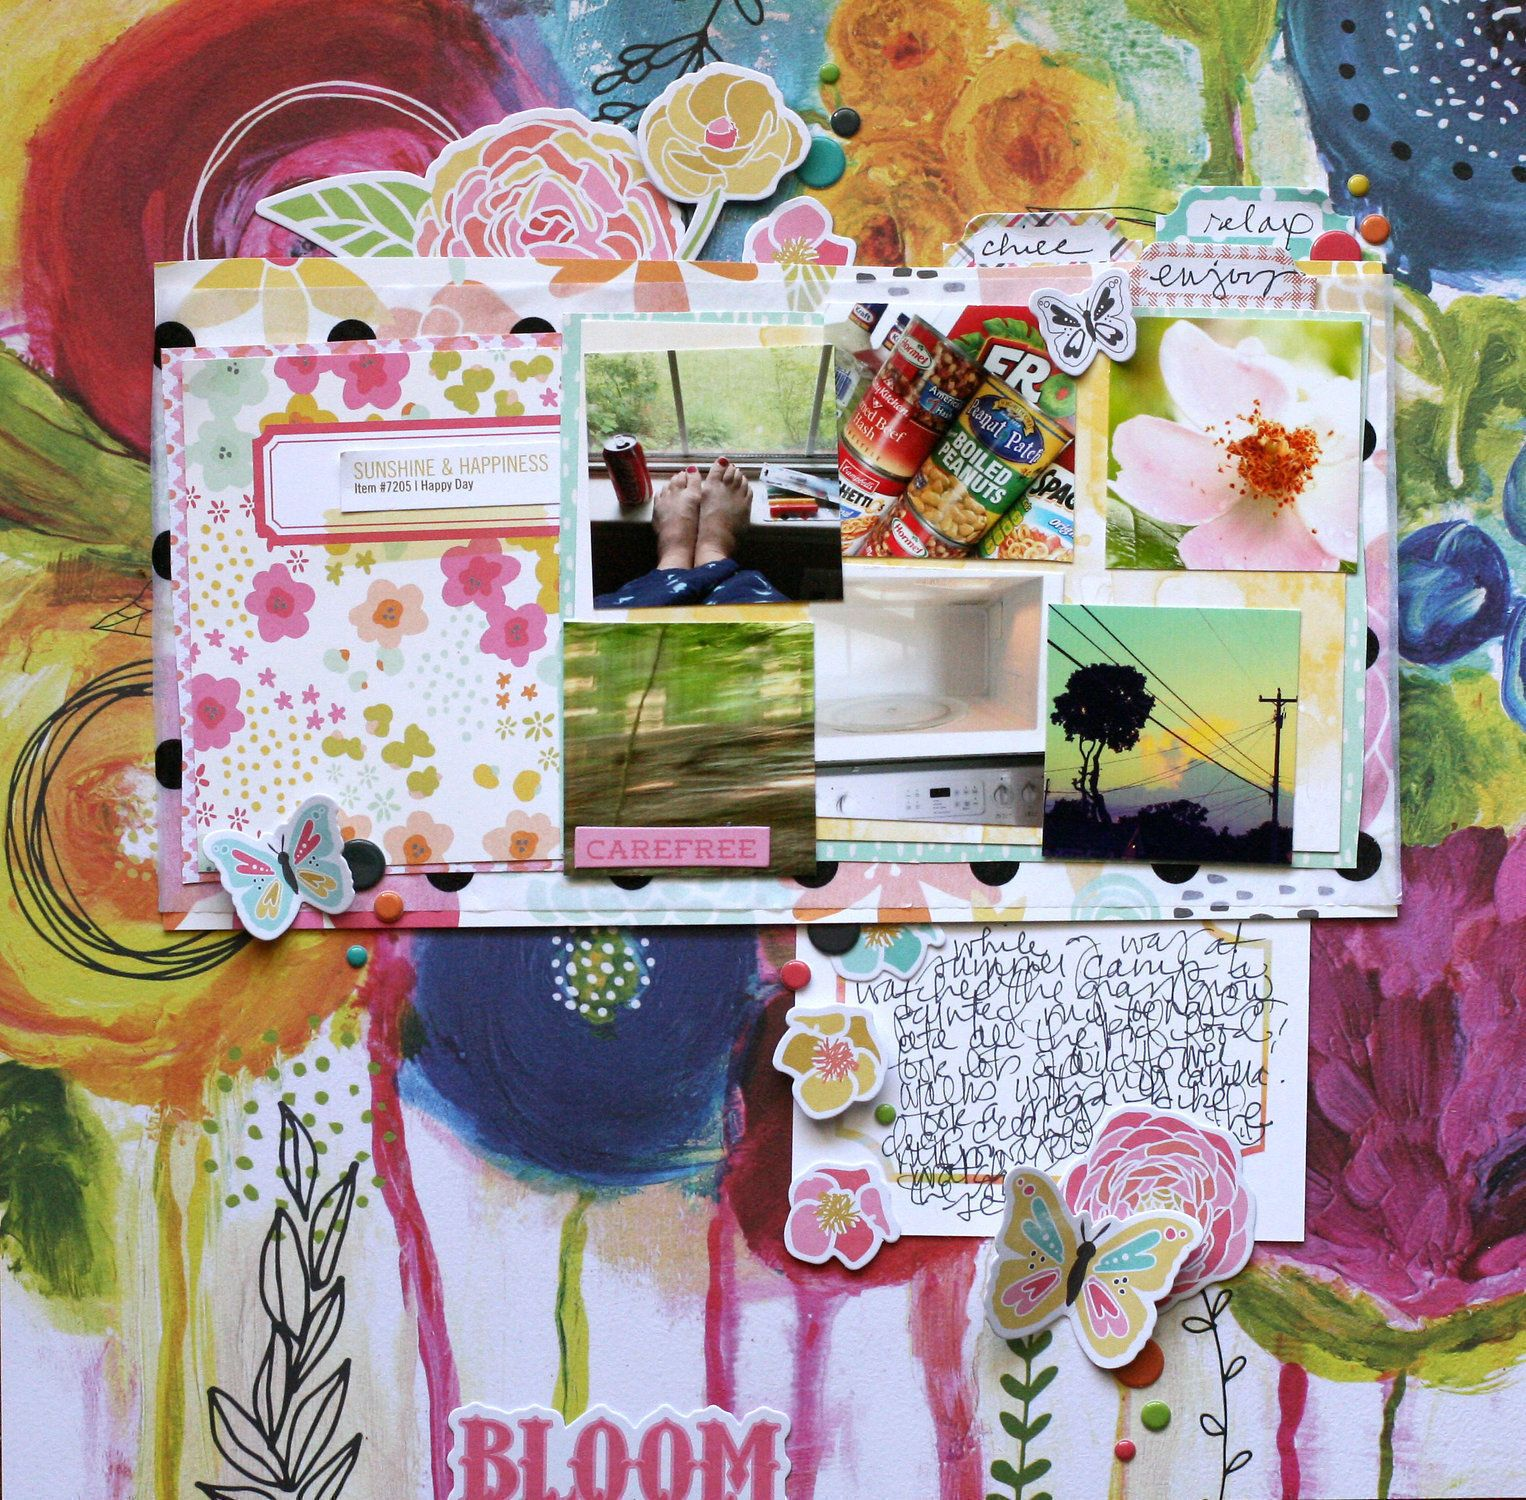 Bloom, by Doris Sander using the Firefly collection from www.cocoadaisy.com #cocoadaisy #scrapbooking #kitclub #layout #diecuts #tissue #paint #grid